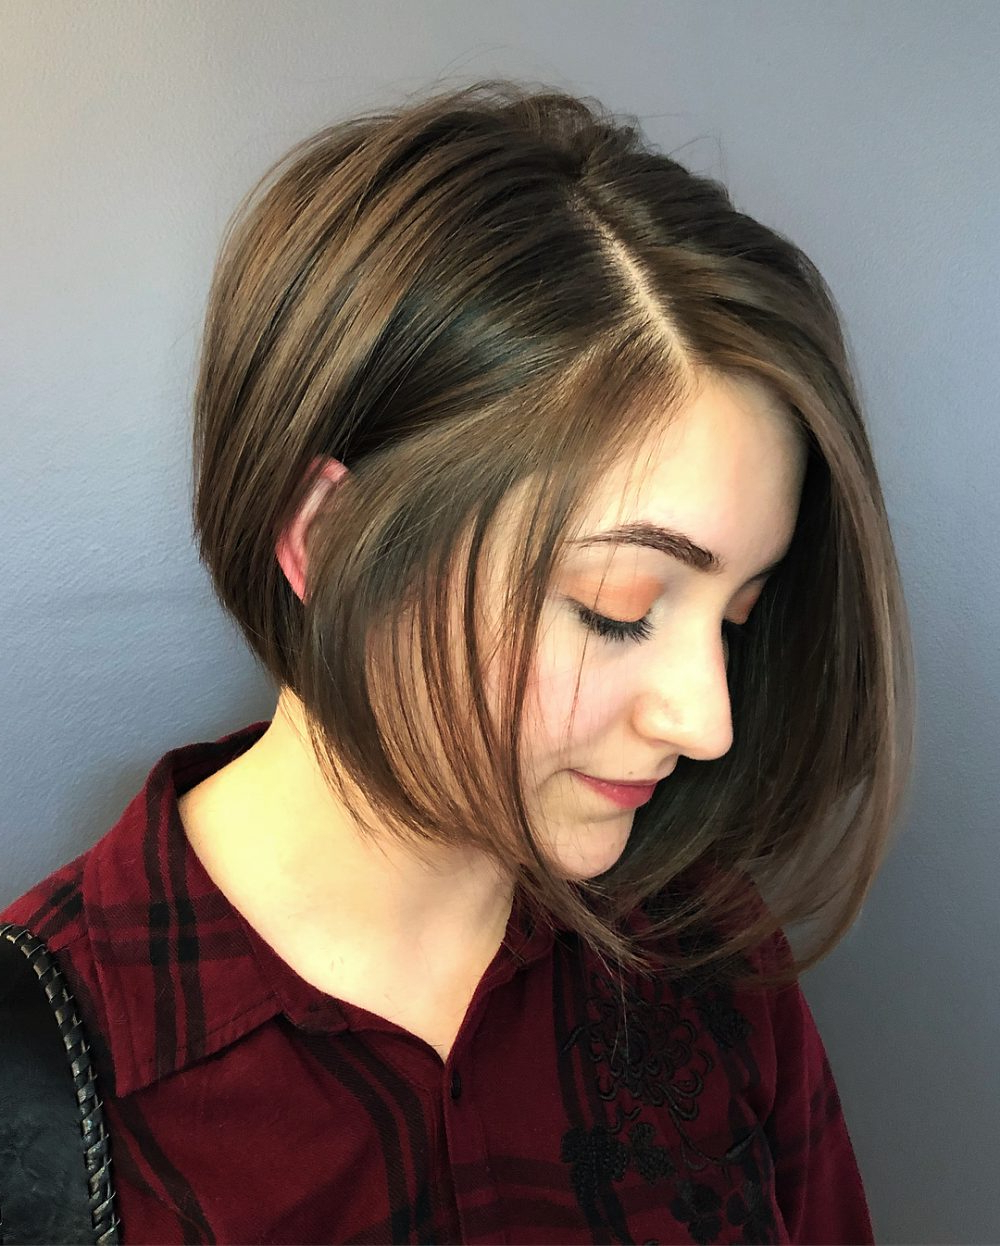 33 Flattering Short Hairstyles For Round Faces In 2018 Inside Flattering Short Haircuts For Fat Faces (View 5 of 25)